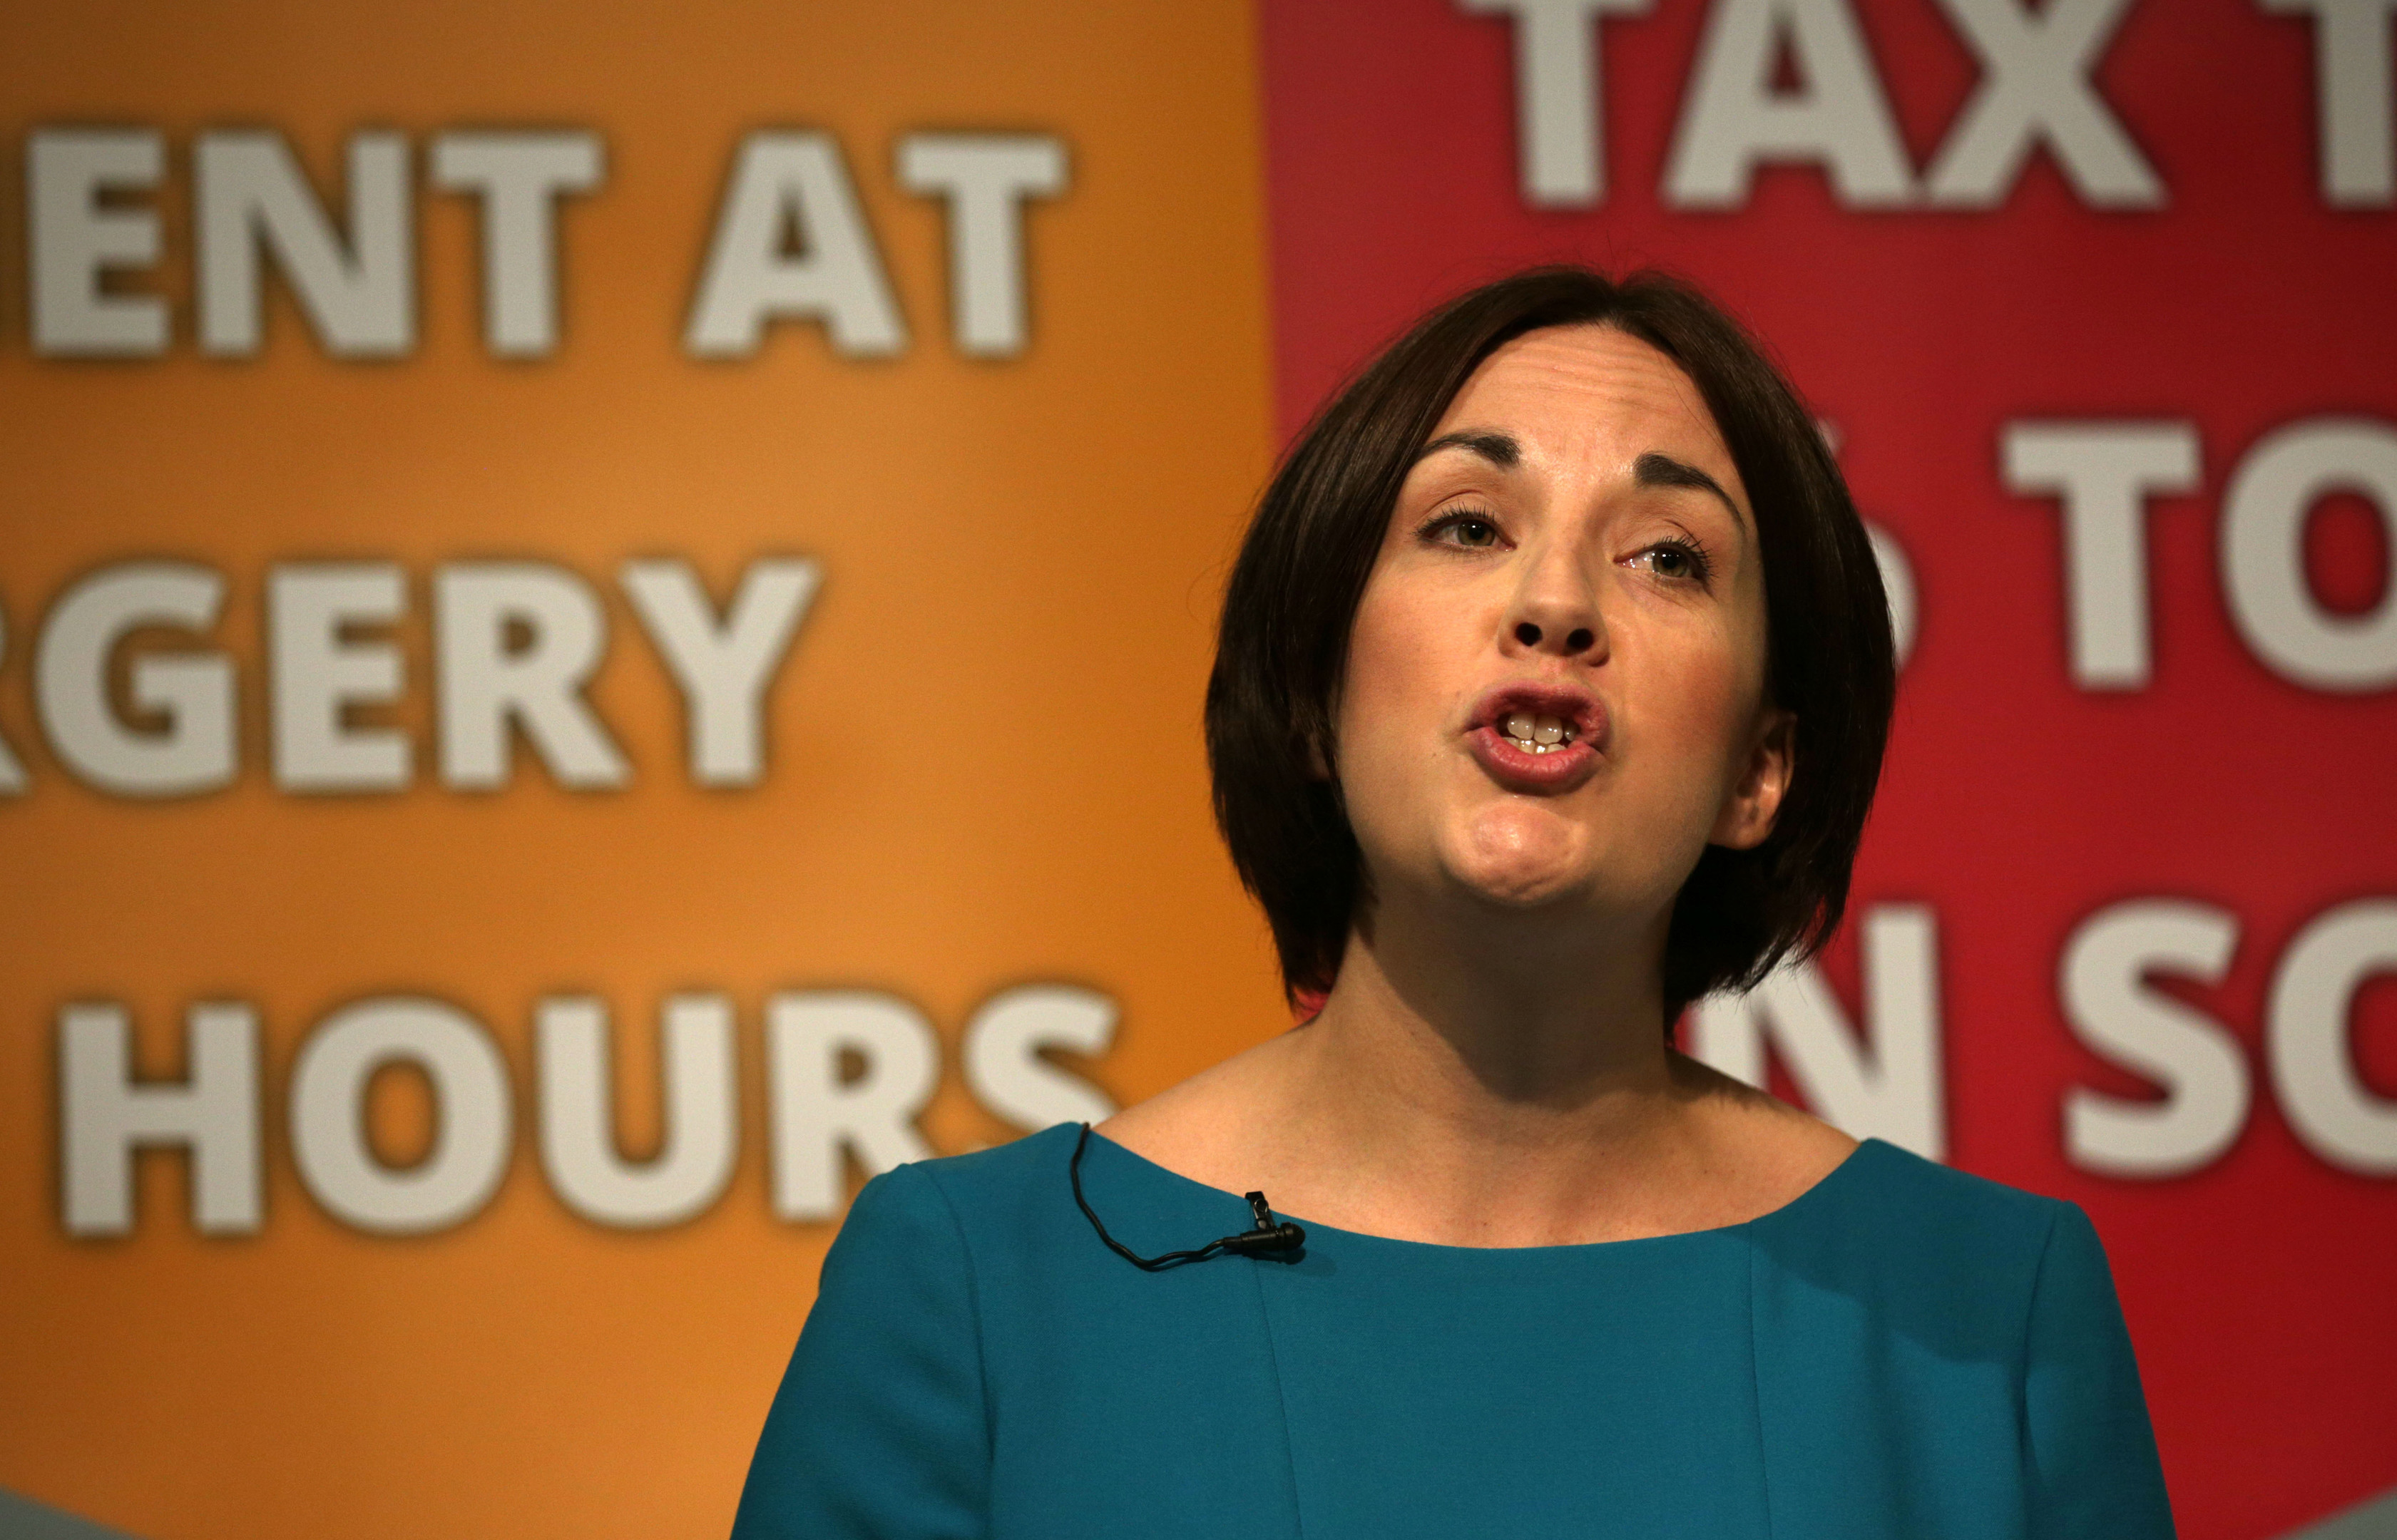 Scottish Labour leader Kezia Dugdale launches her party's manifesto.